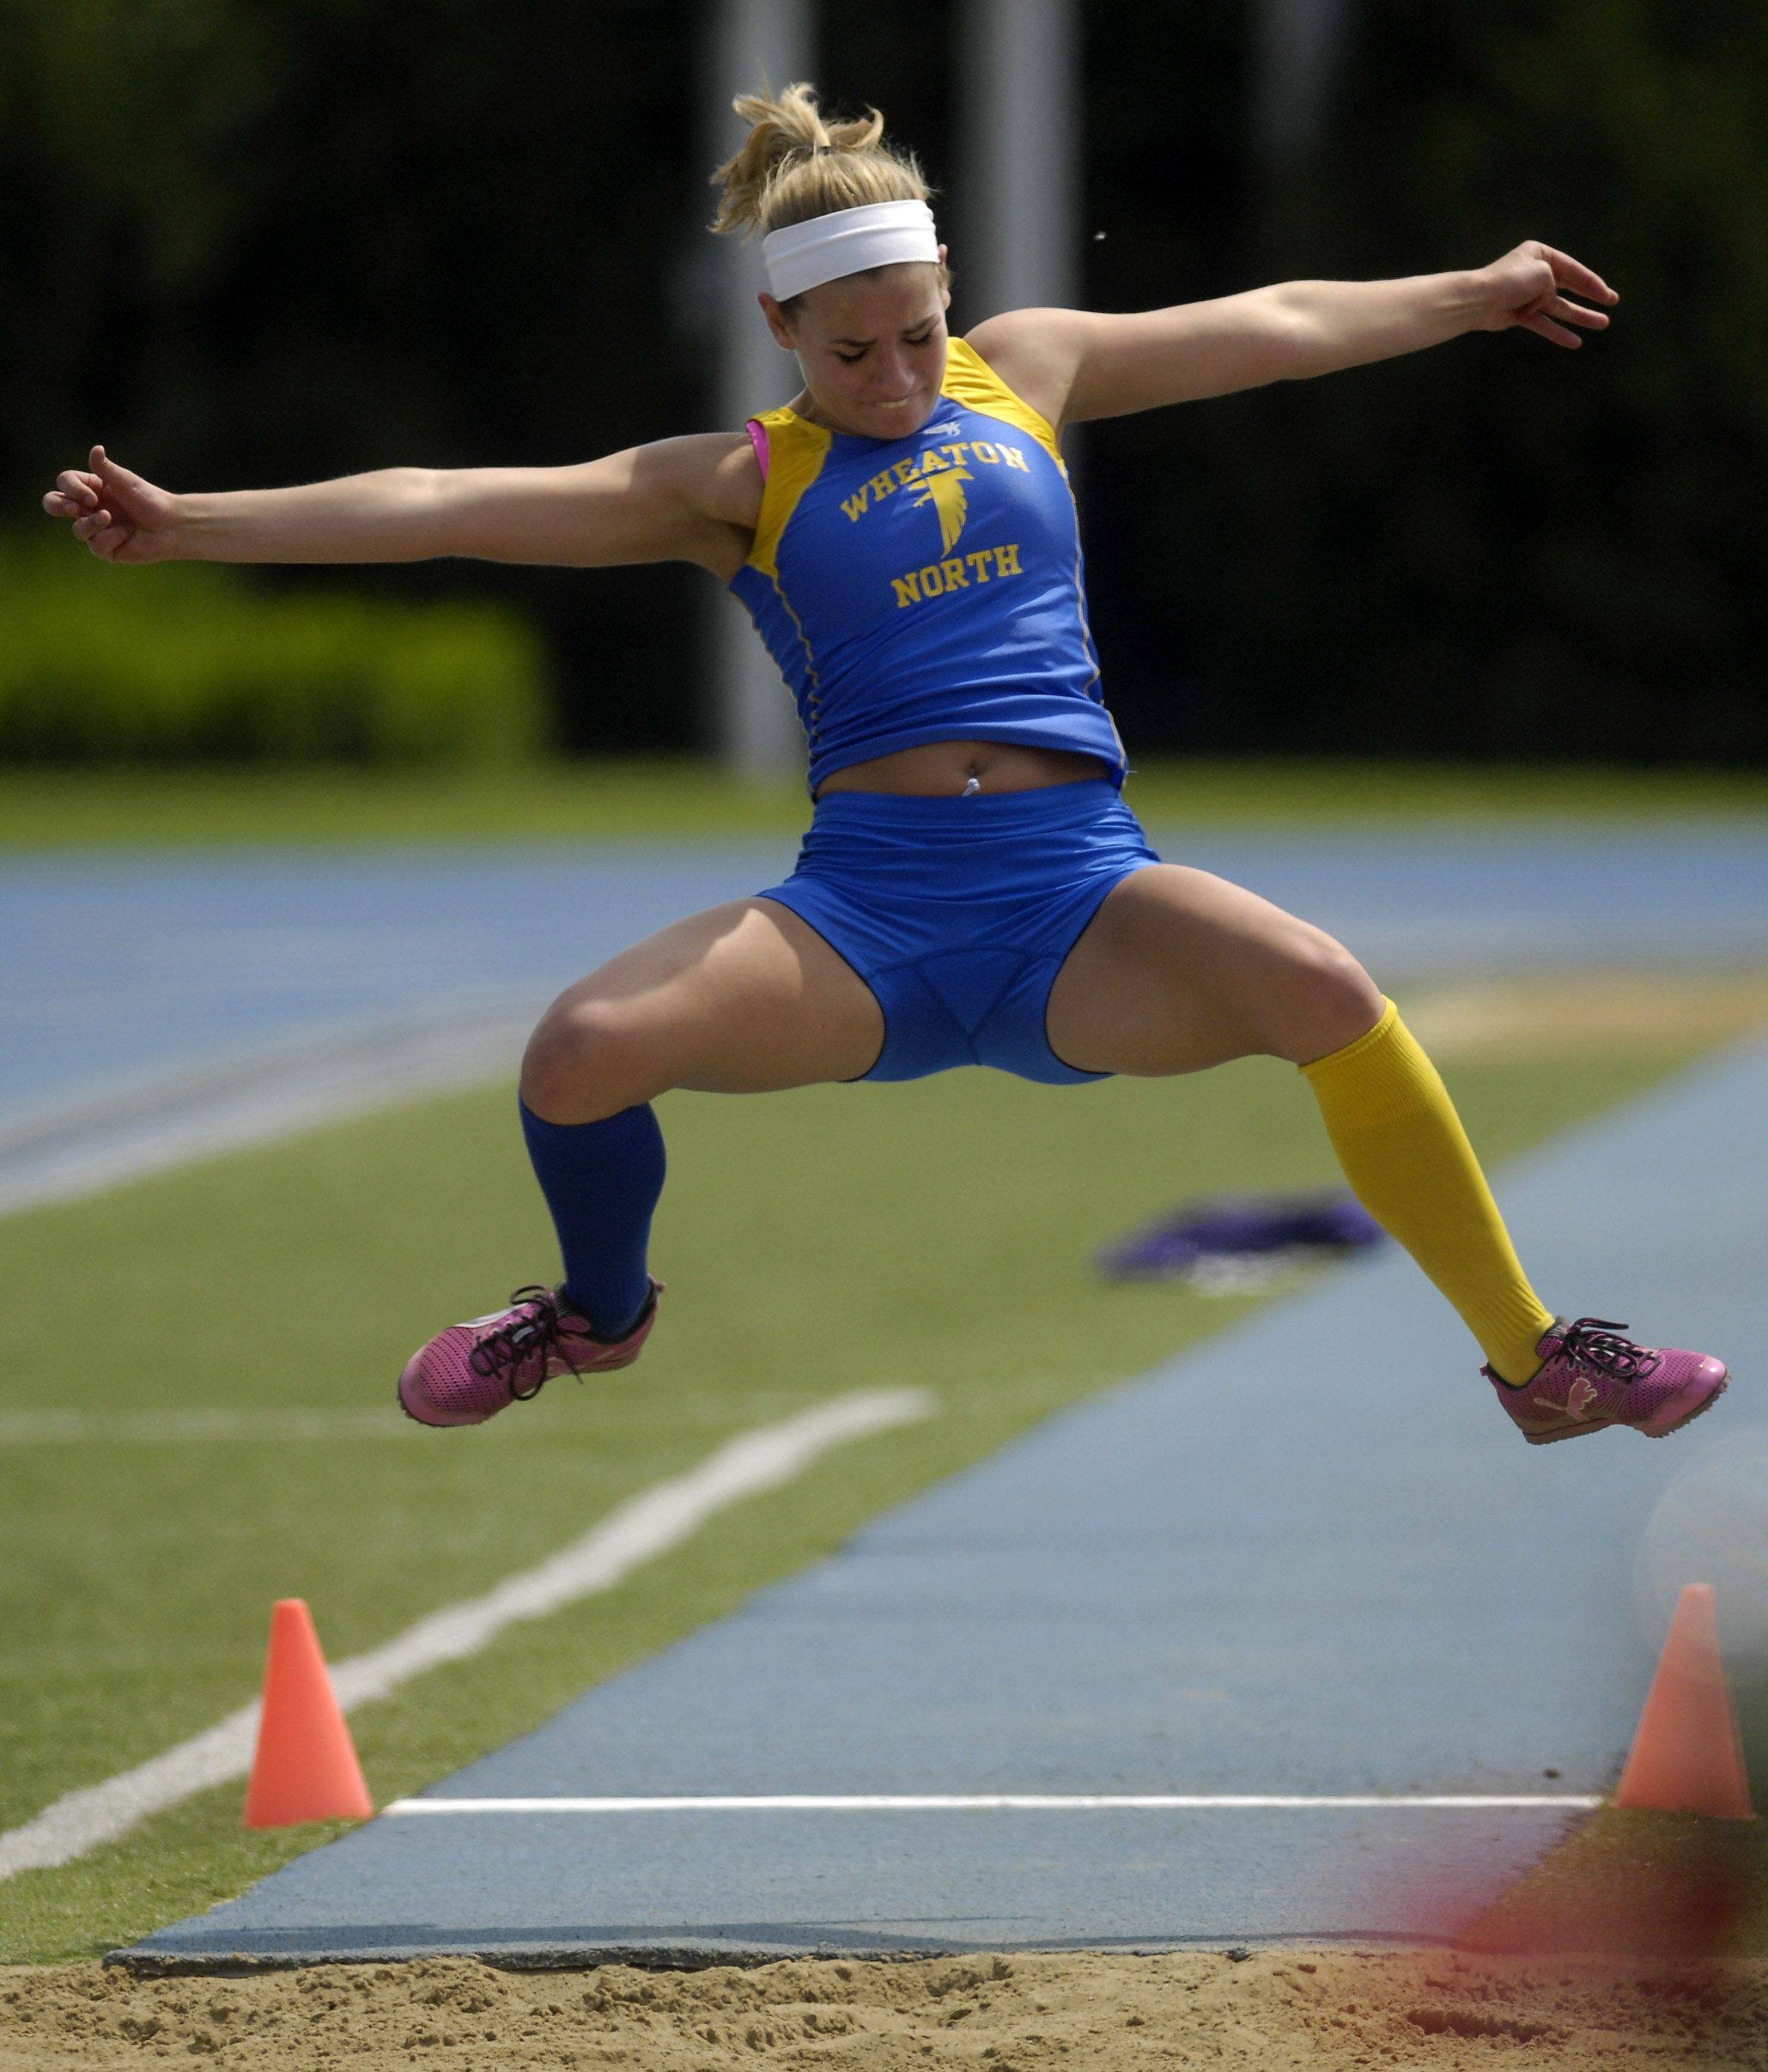 Wheaton North's Kelly O'Connor competes in the long jump during Friday's preliminaries of the IHSA girls state track finals in Charleston.